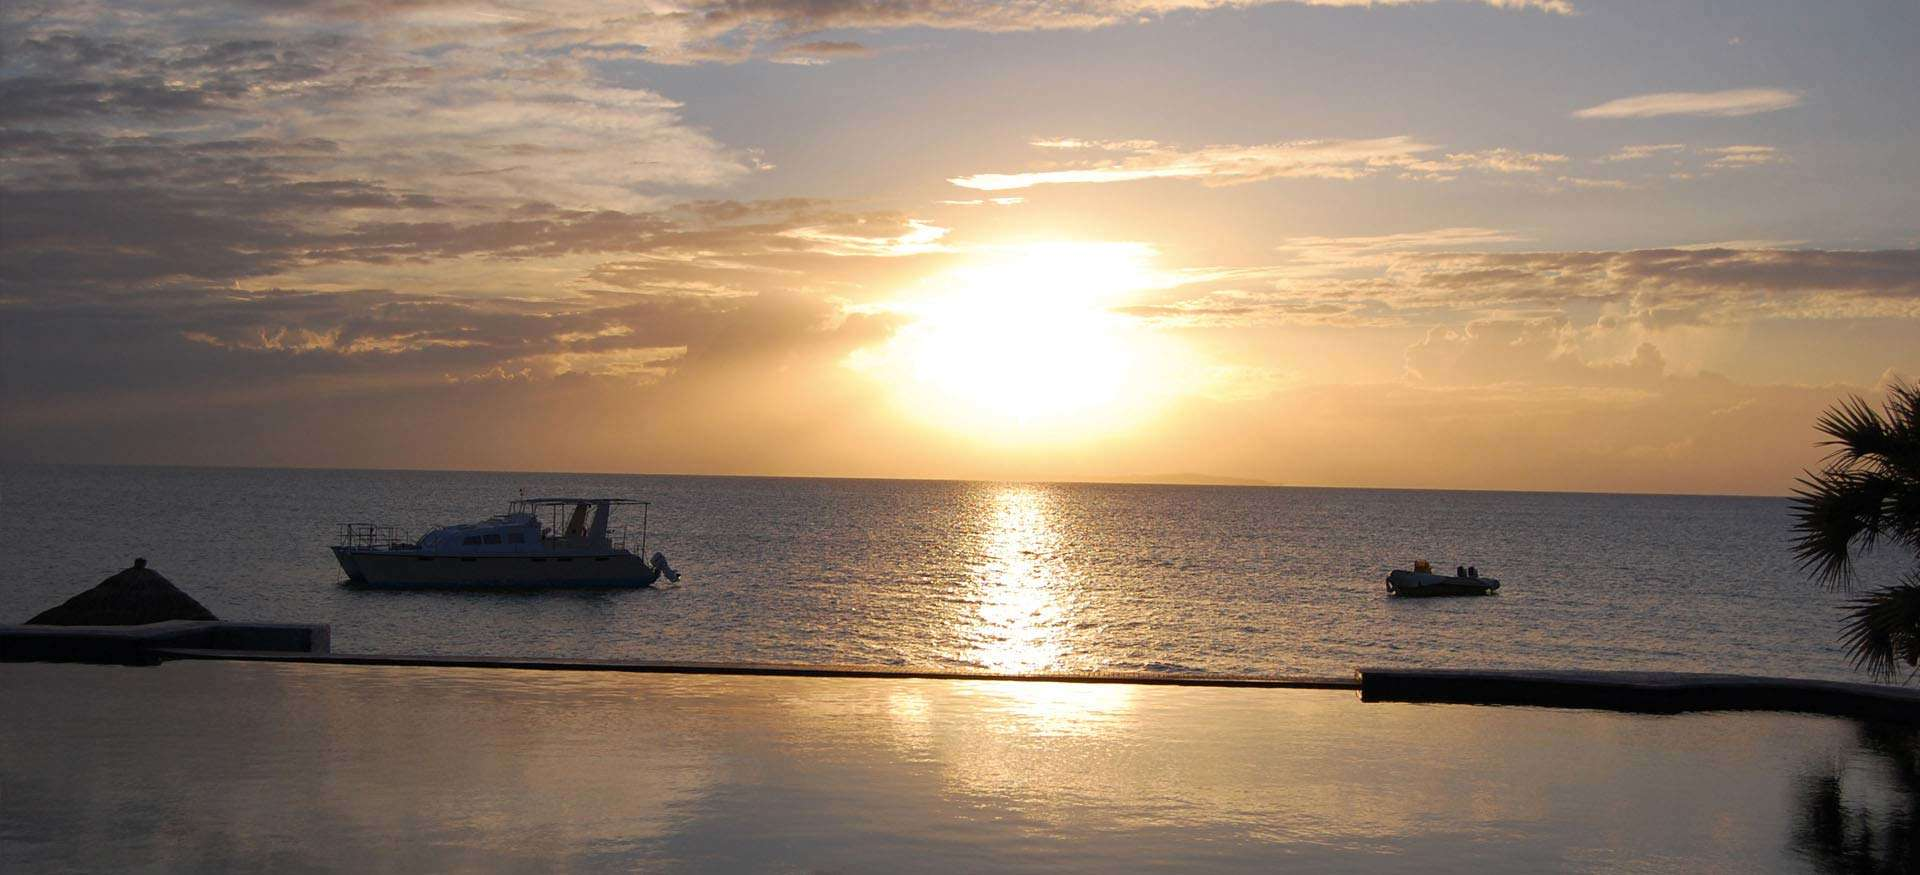 Pemba and matemo holiday package pemba mozambique accommodation - Slide Background